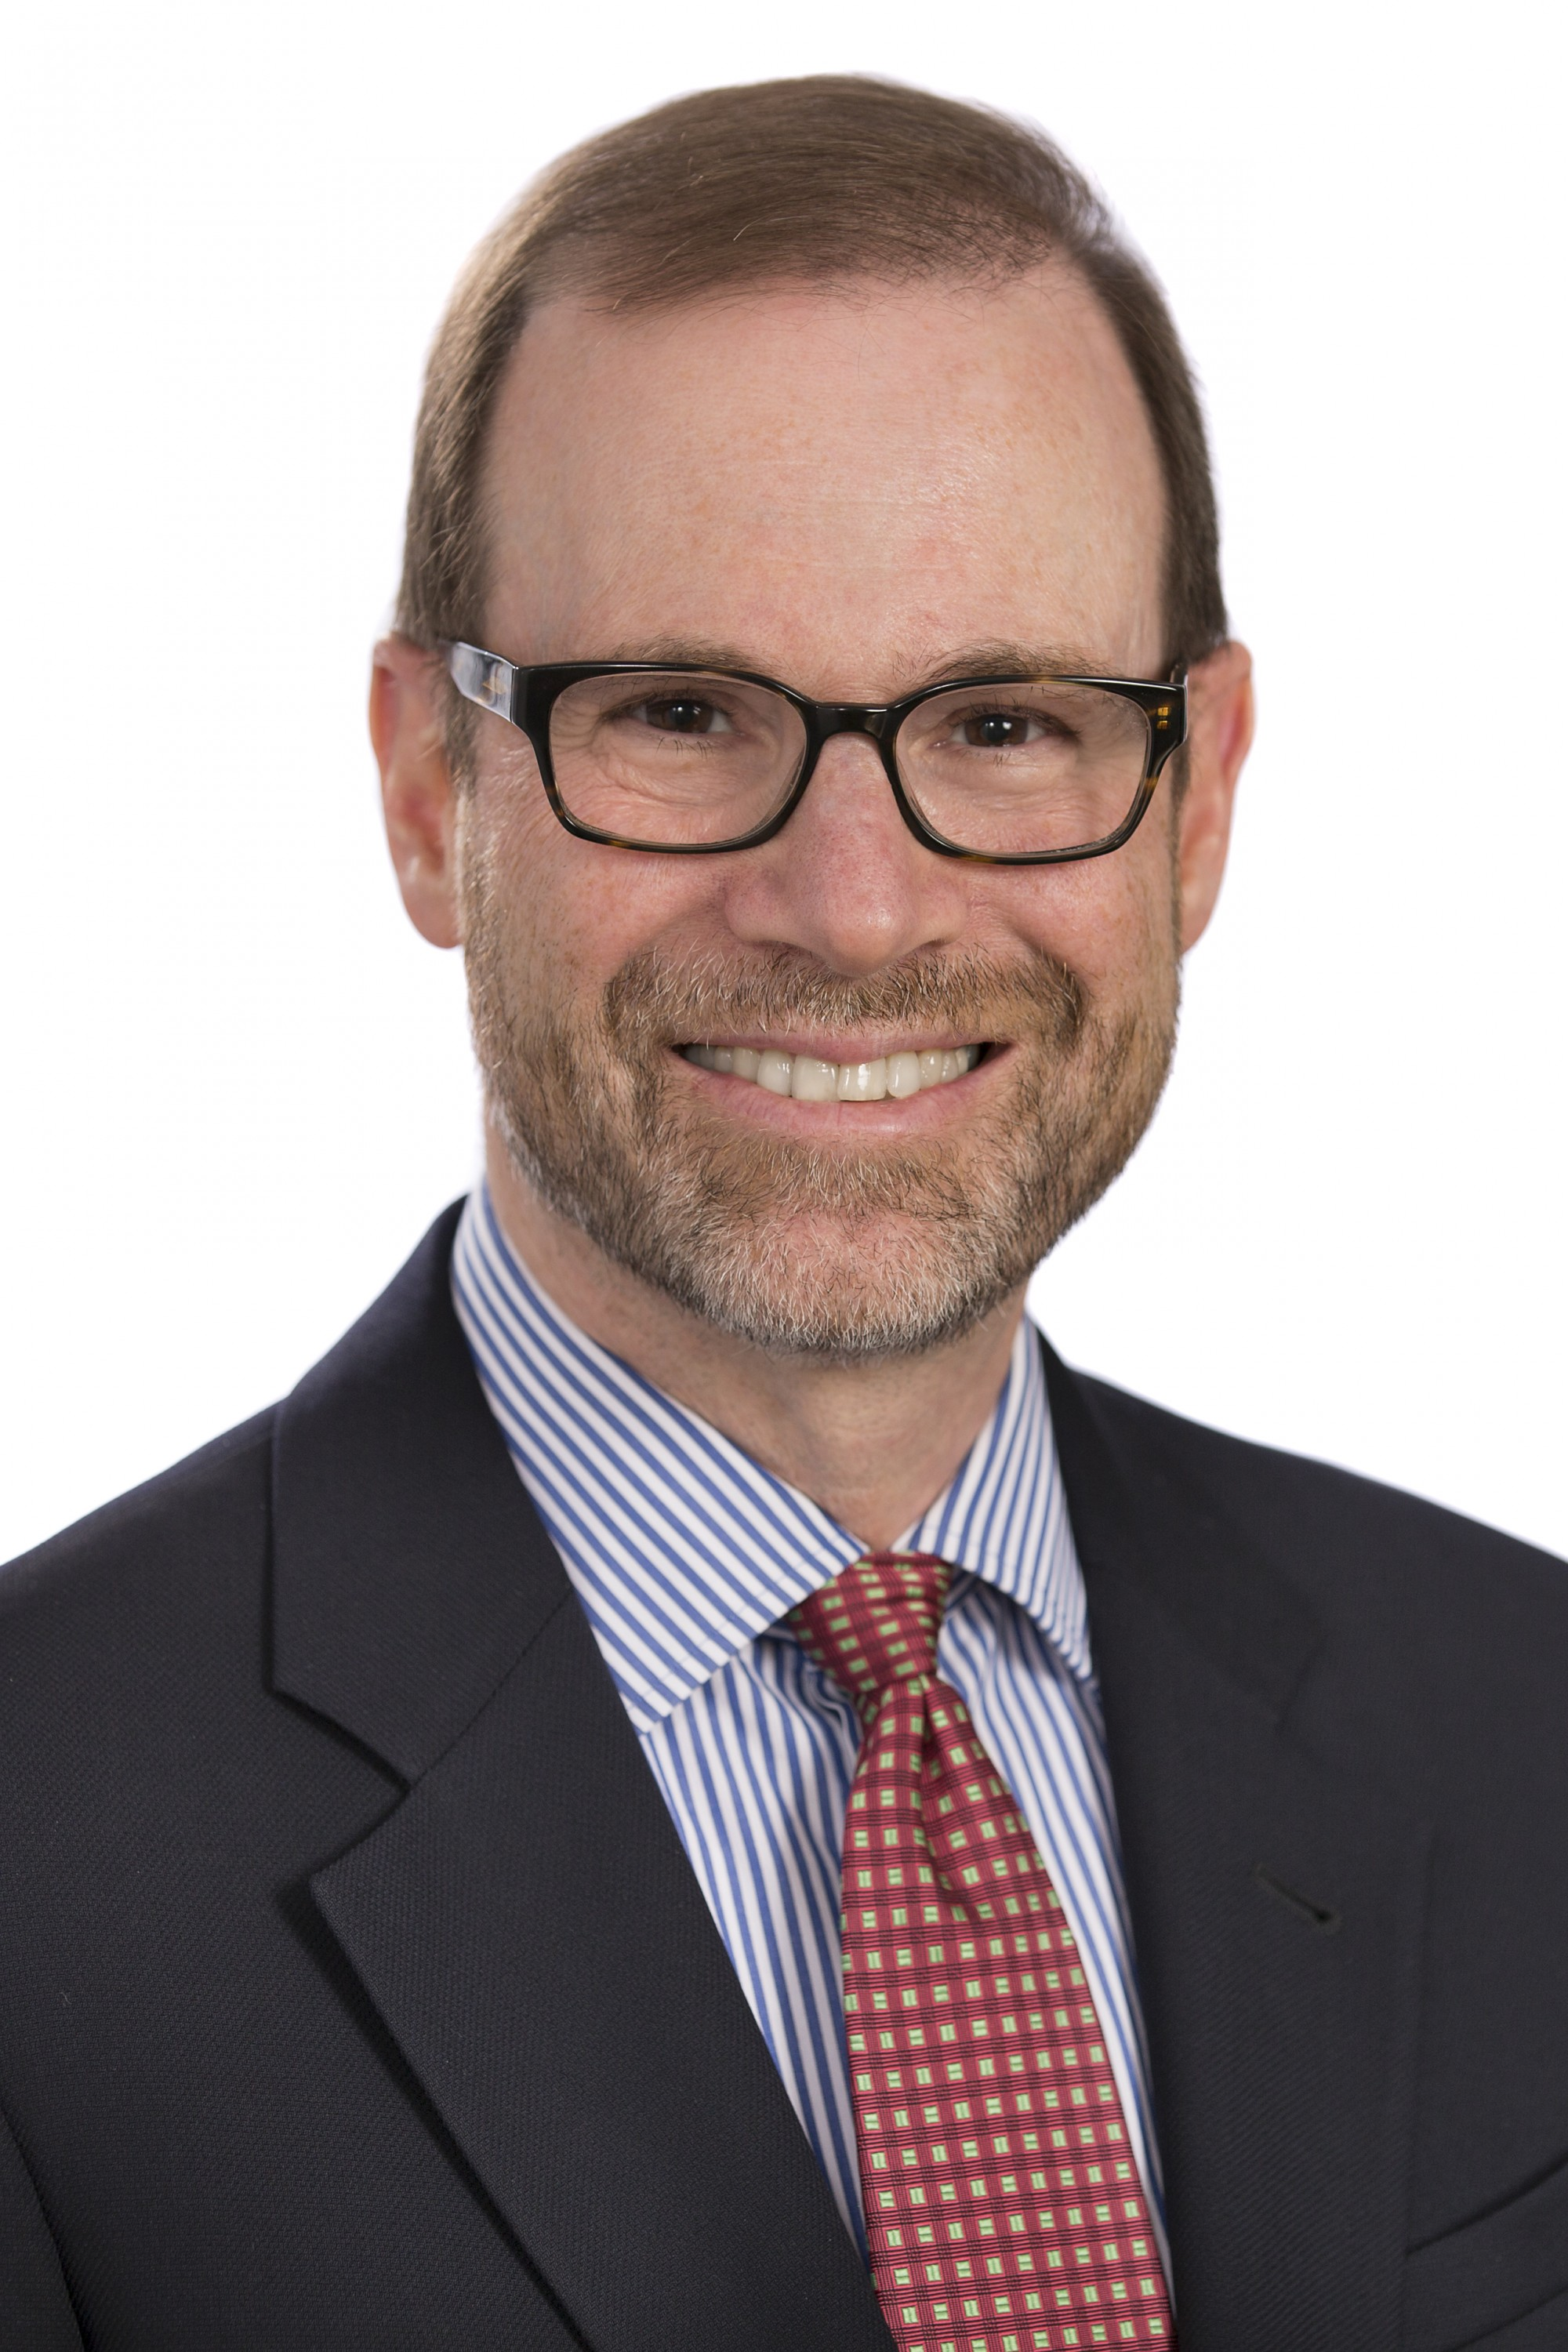 Stephen J. Adler, President and Editor-in-Chief, Reuters